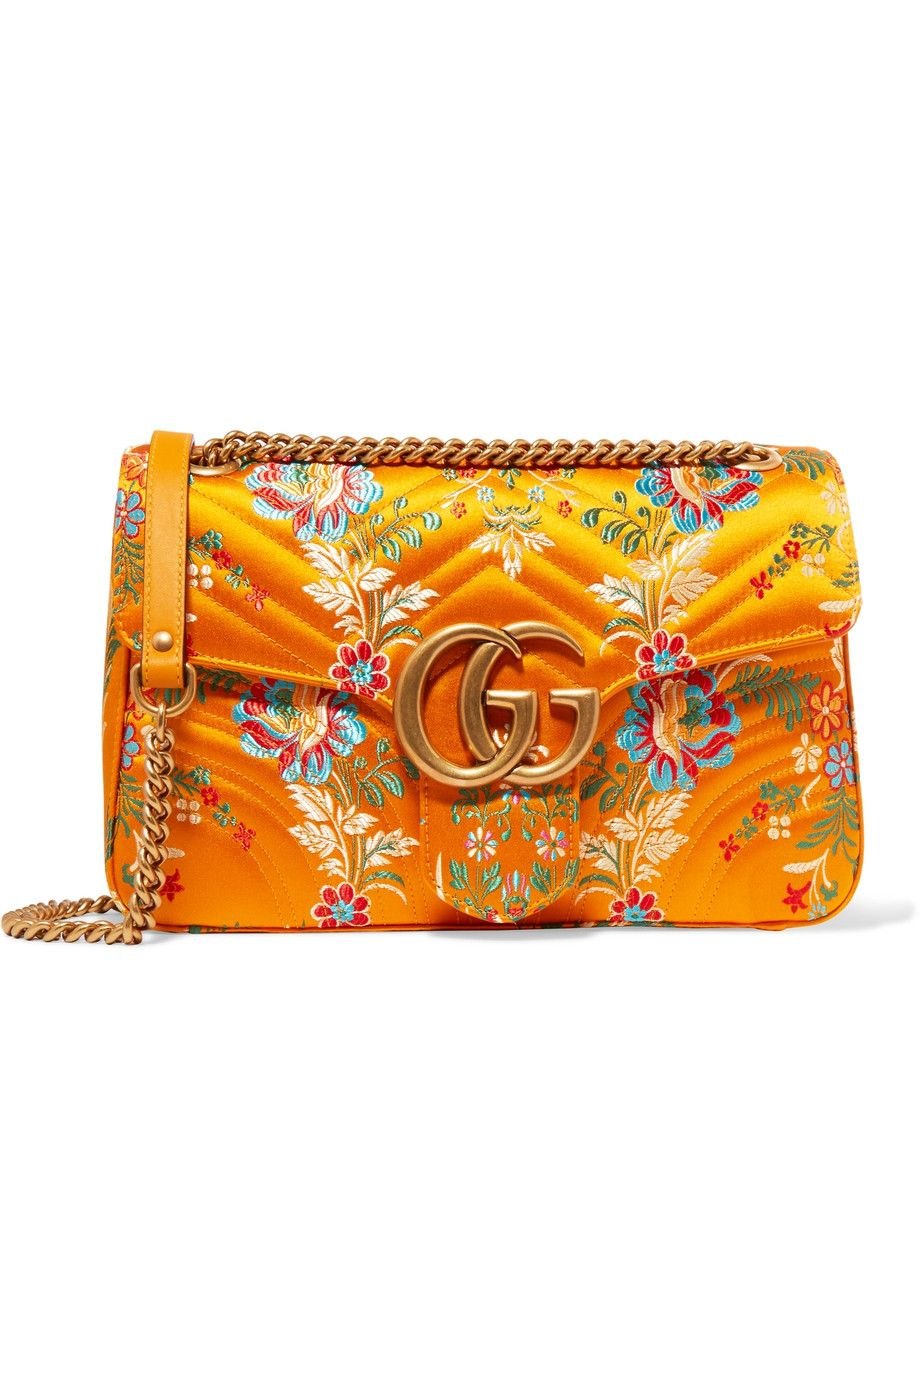 5096d1b188ef GUCCI GG Marmont medium quilted floral-jacquard shoulder bag: multicolored  jacquard, marigold leather (Calf) Push clasp-fastening front flap Comes  with dust ...